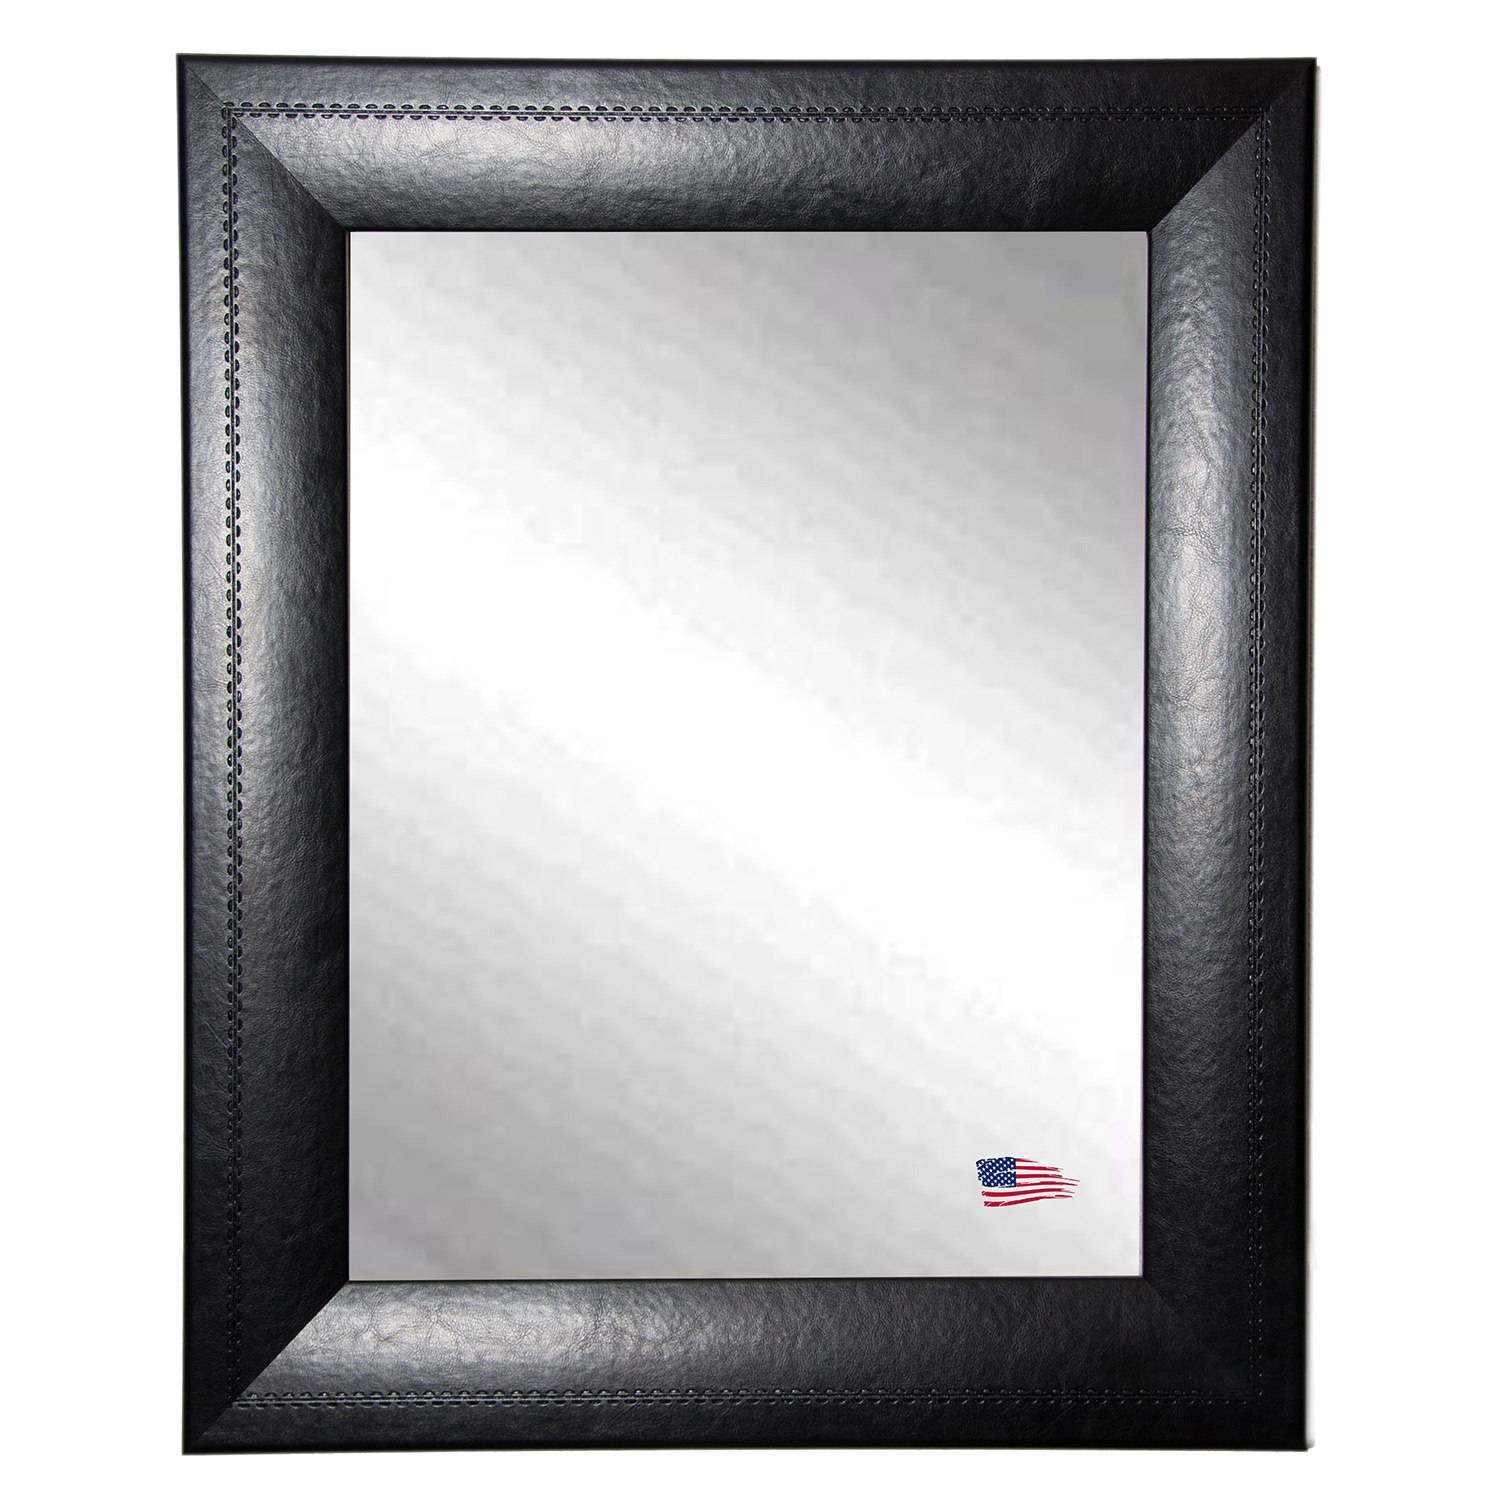 American Made Rayne Luxurious Black Leather Wall Mirror | Ebay In Leather Wall Mirrors (View 10 of 25)